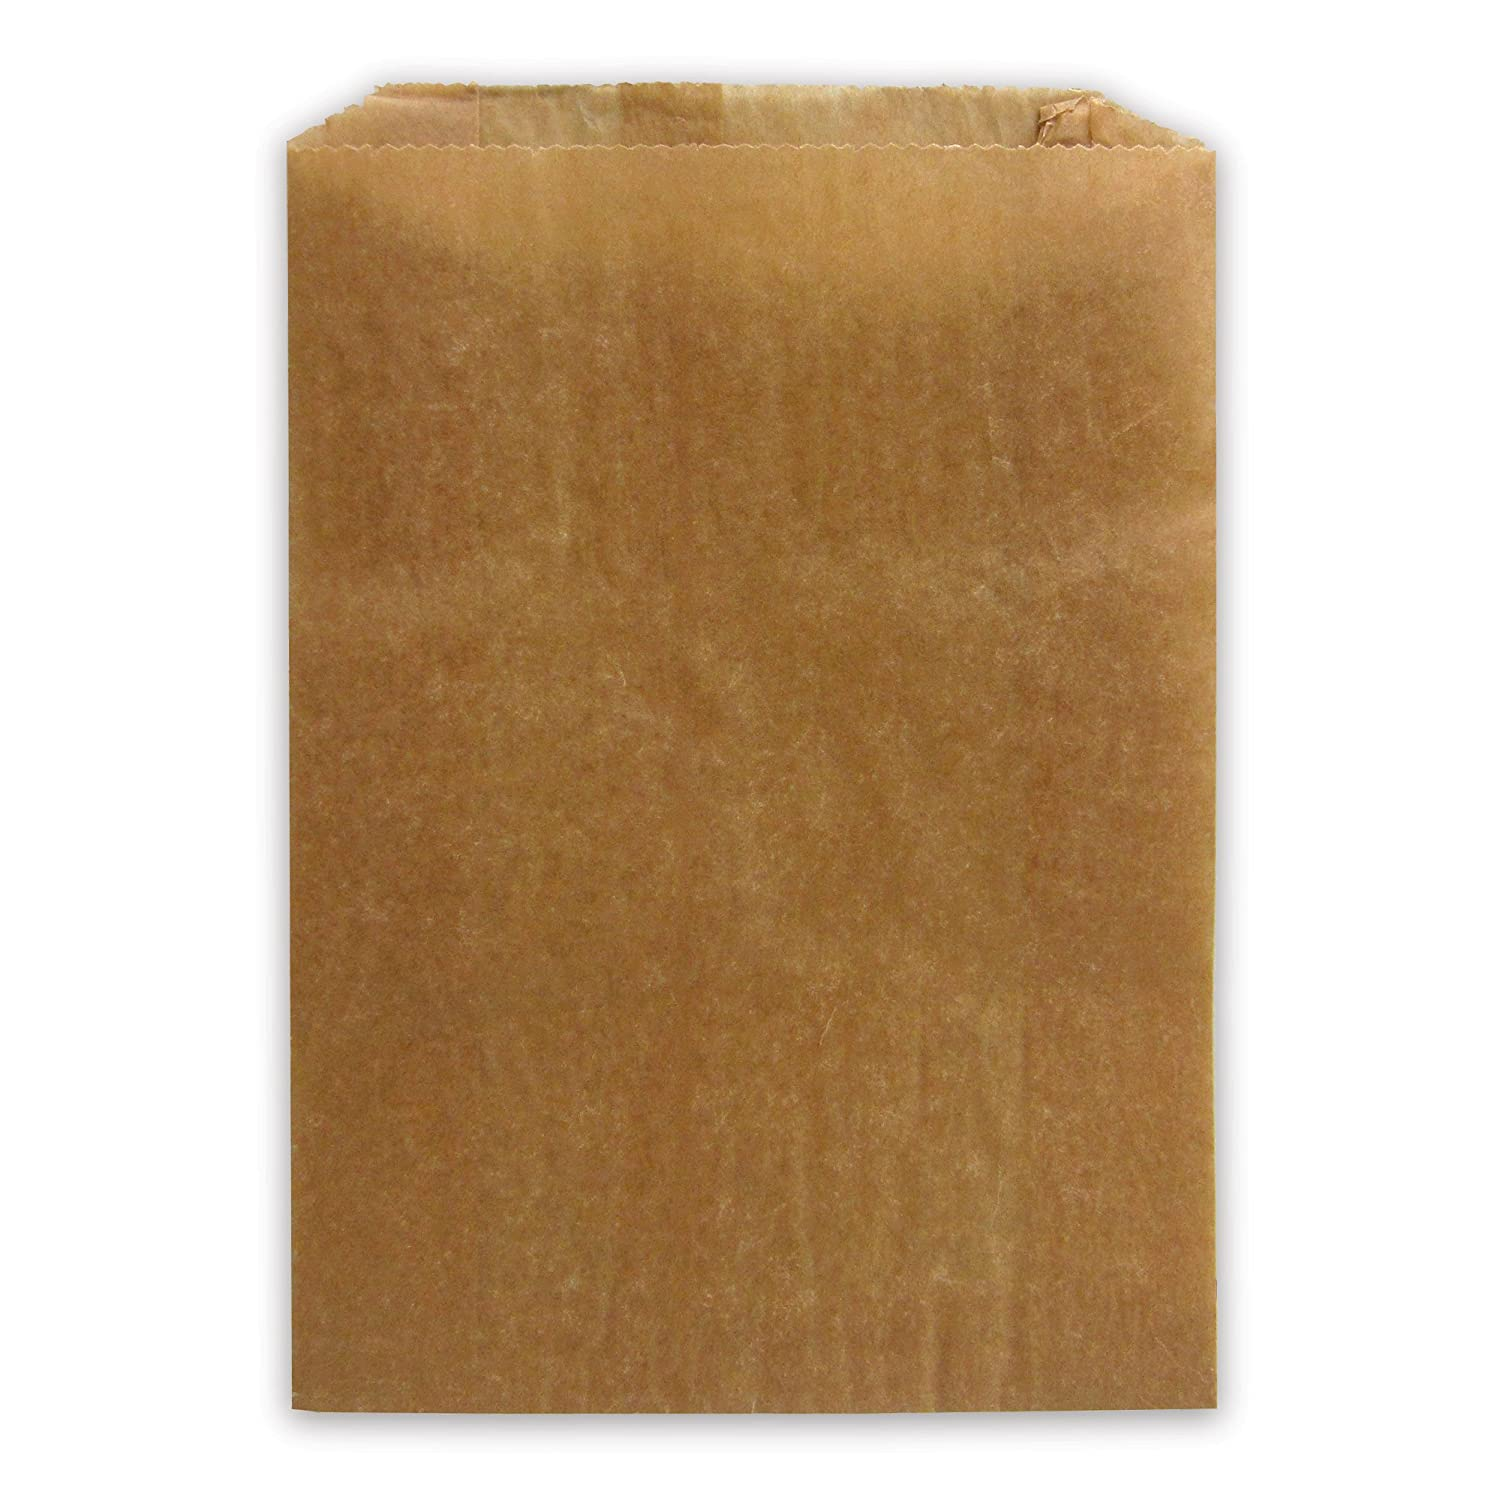 Waxed Paper Liners w Max 86% OFF Gusset 23034 7.5x10.5x3 for 23033 23031 Topics on TV